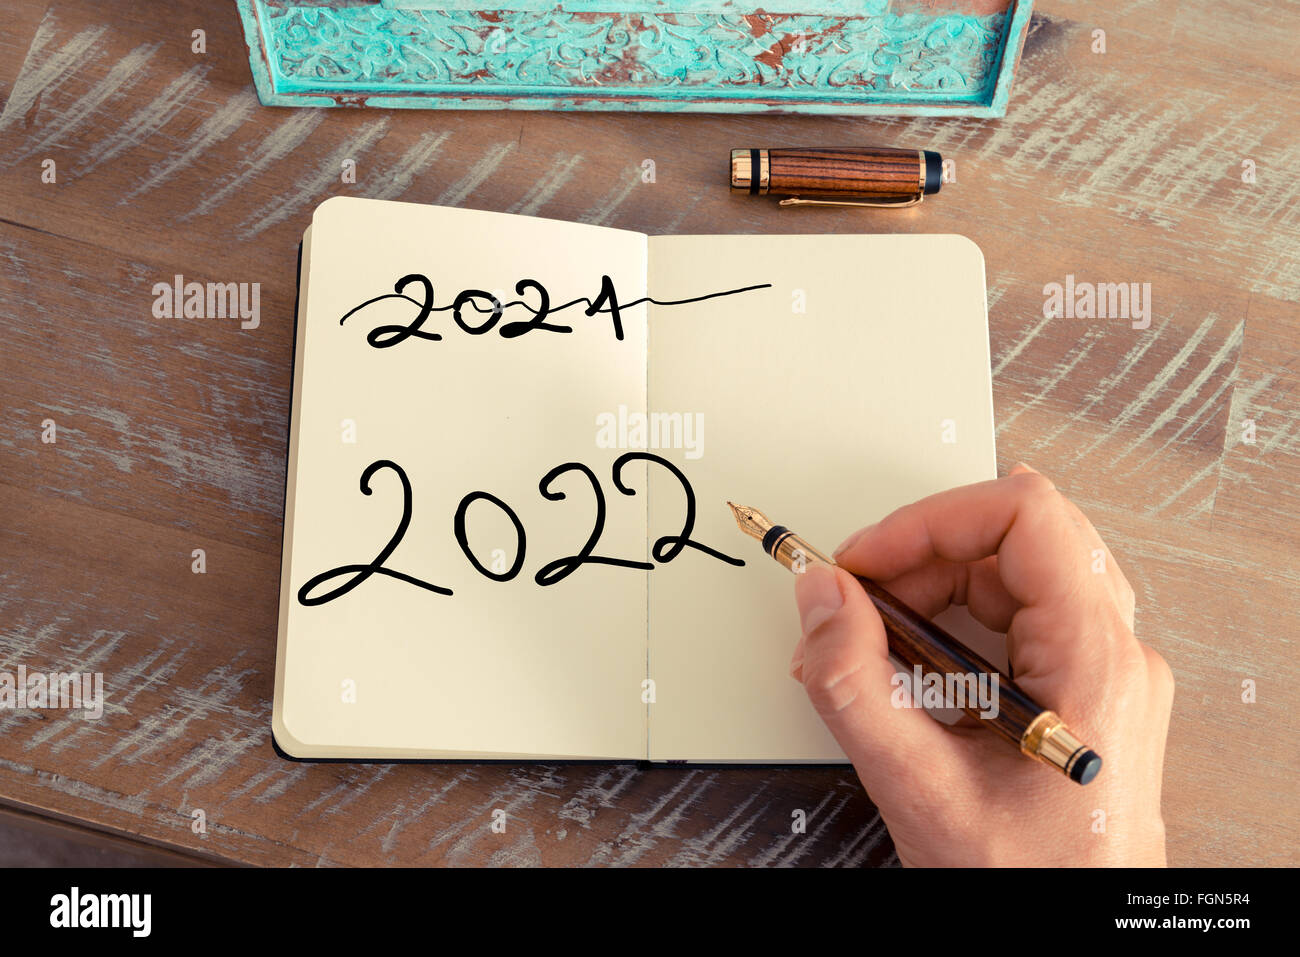 Retro effect and toned image of a woman hand writing a note with a fountain pen on a notebook. Motivational concept - Stock Image